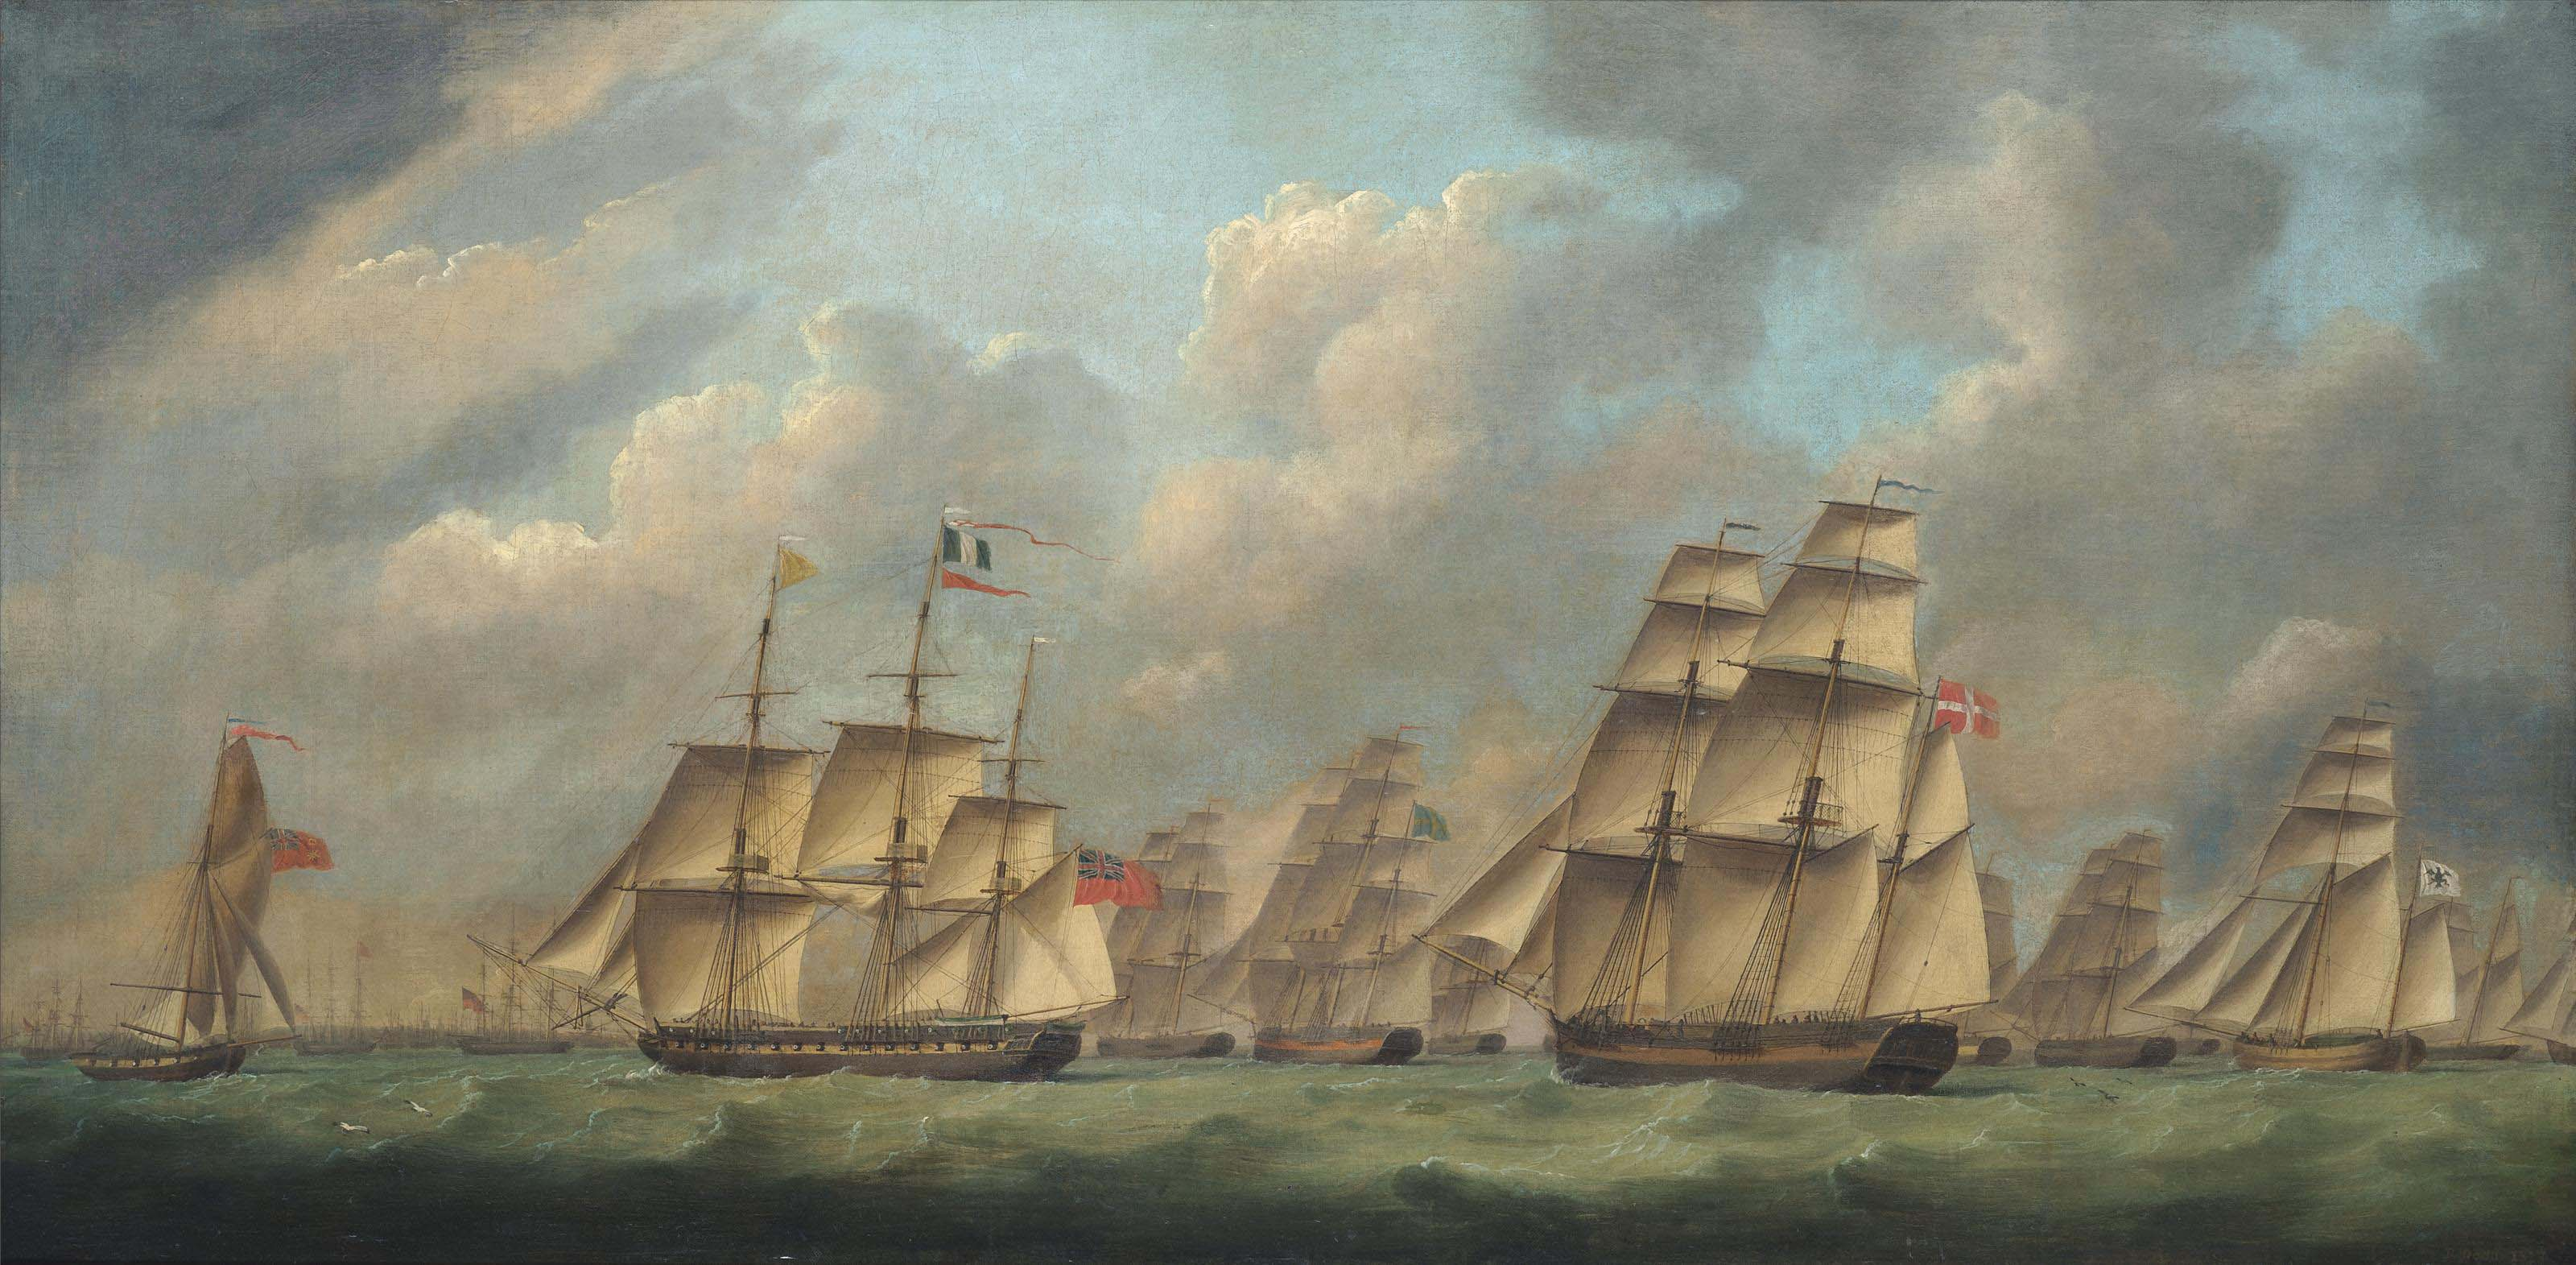 An English frigate escorting a large international merchant convoy